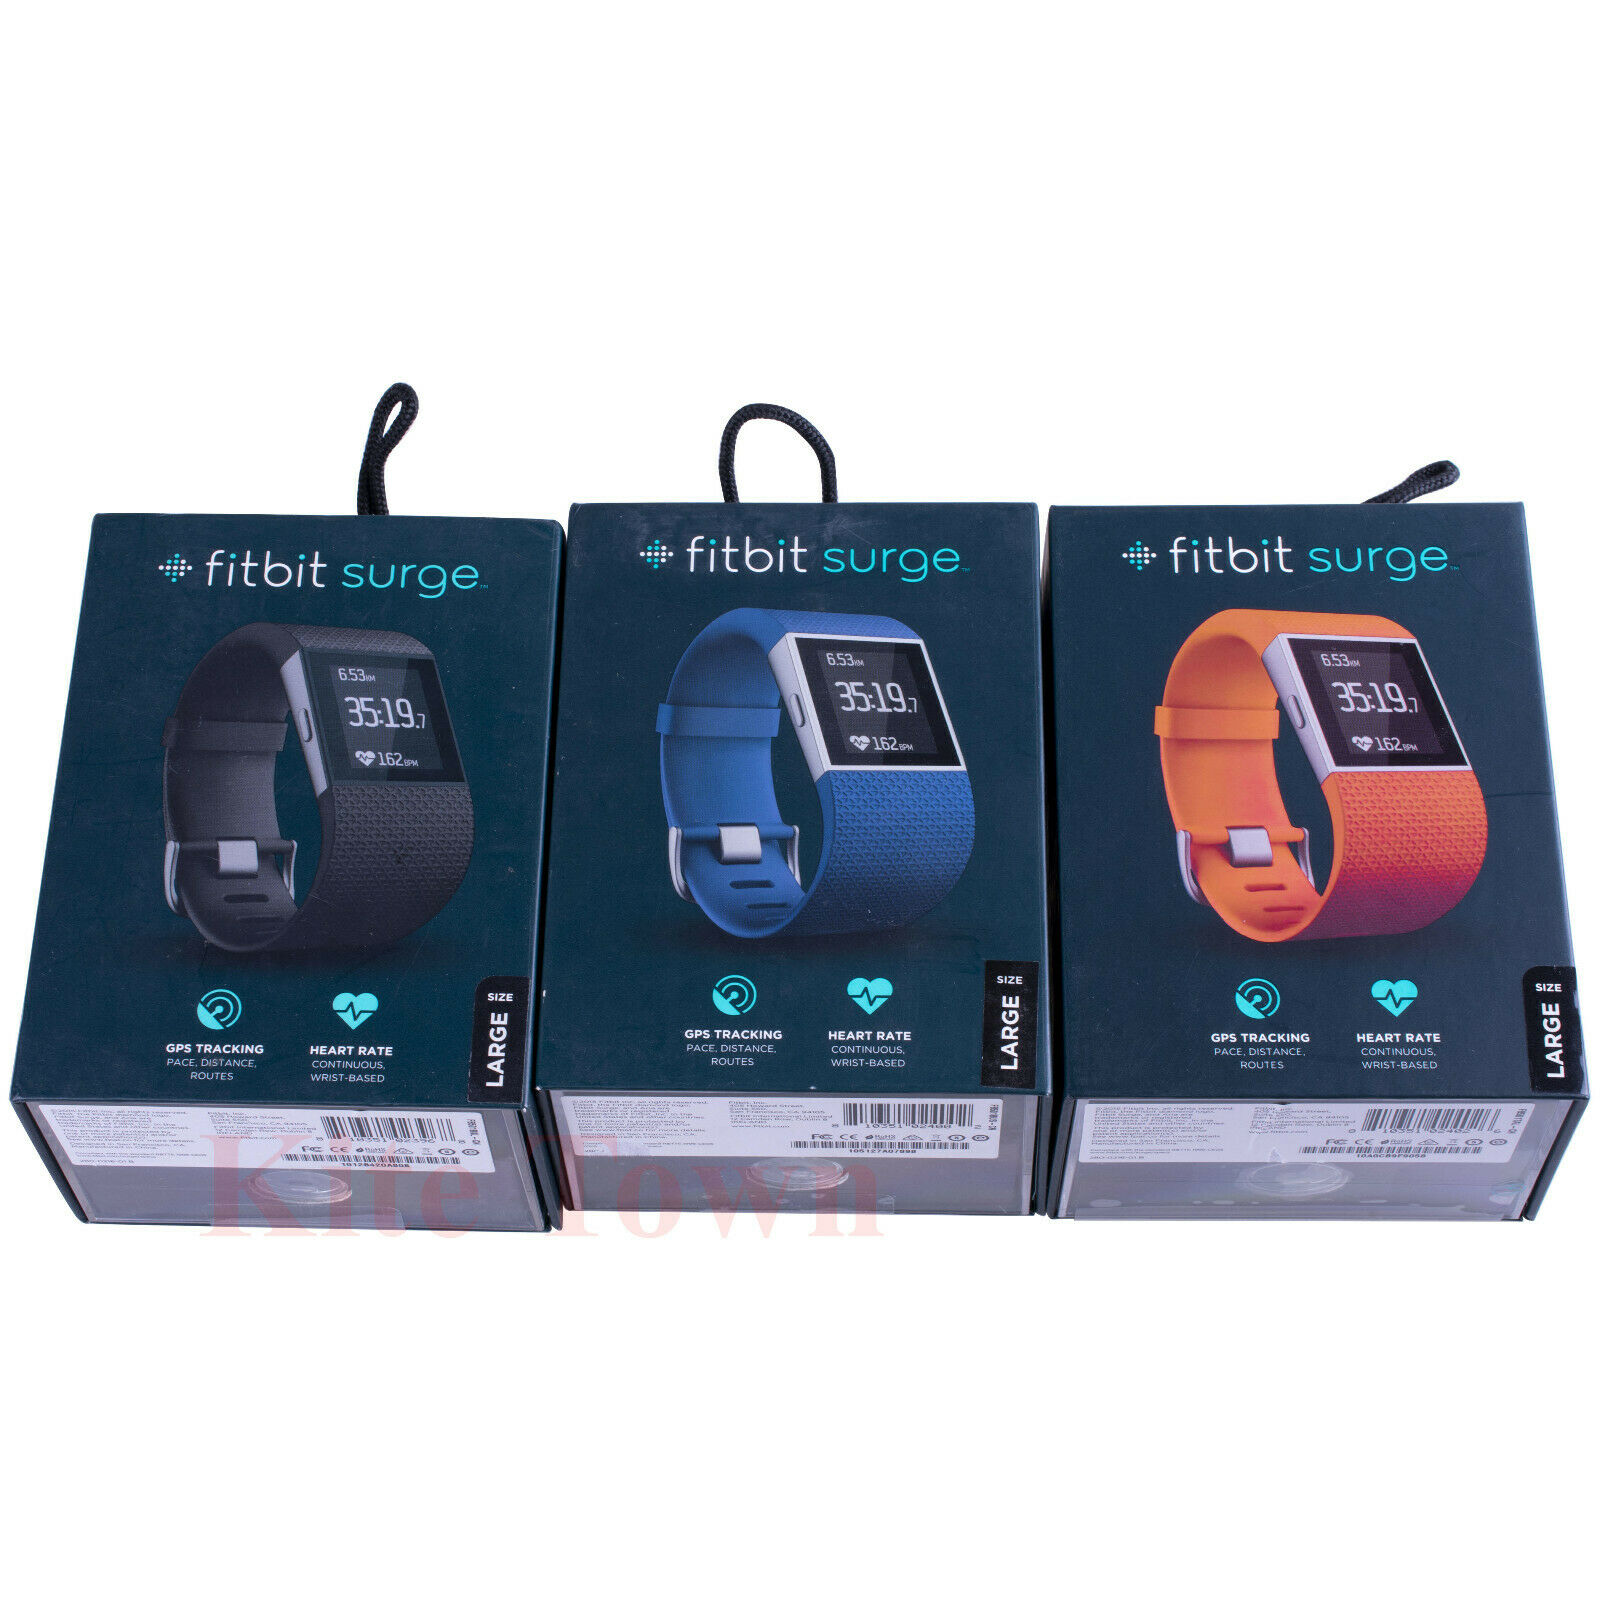 New Fitbit Surge Fitness Super Watch With Heart Rate Monitor